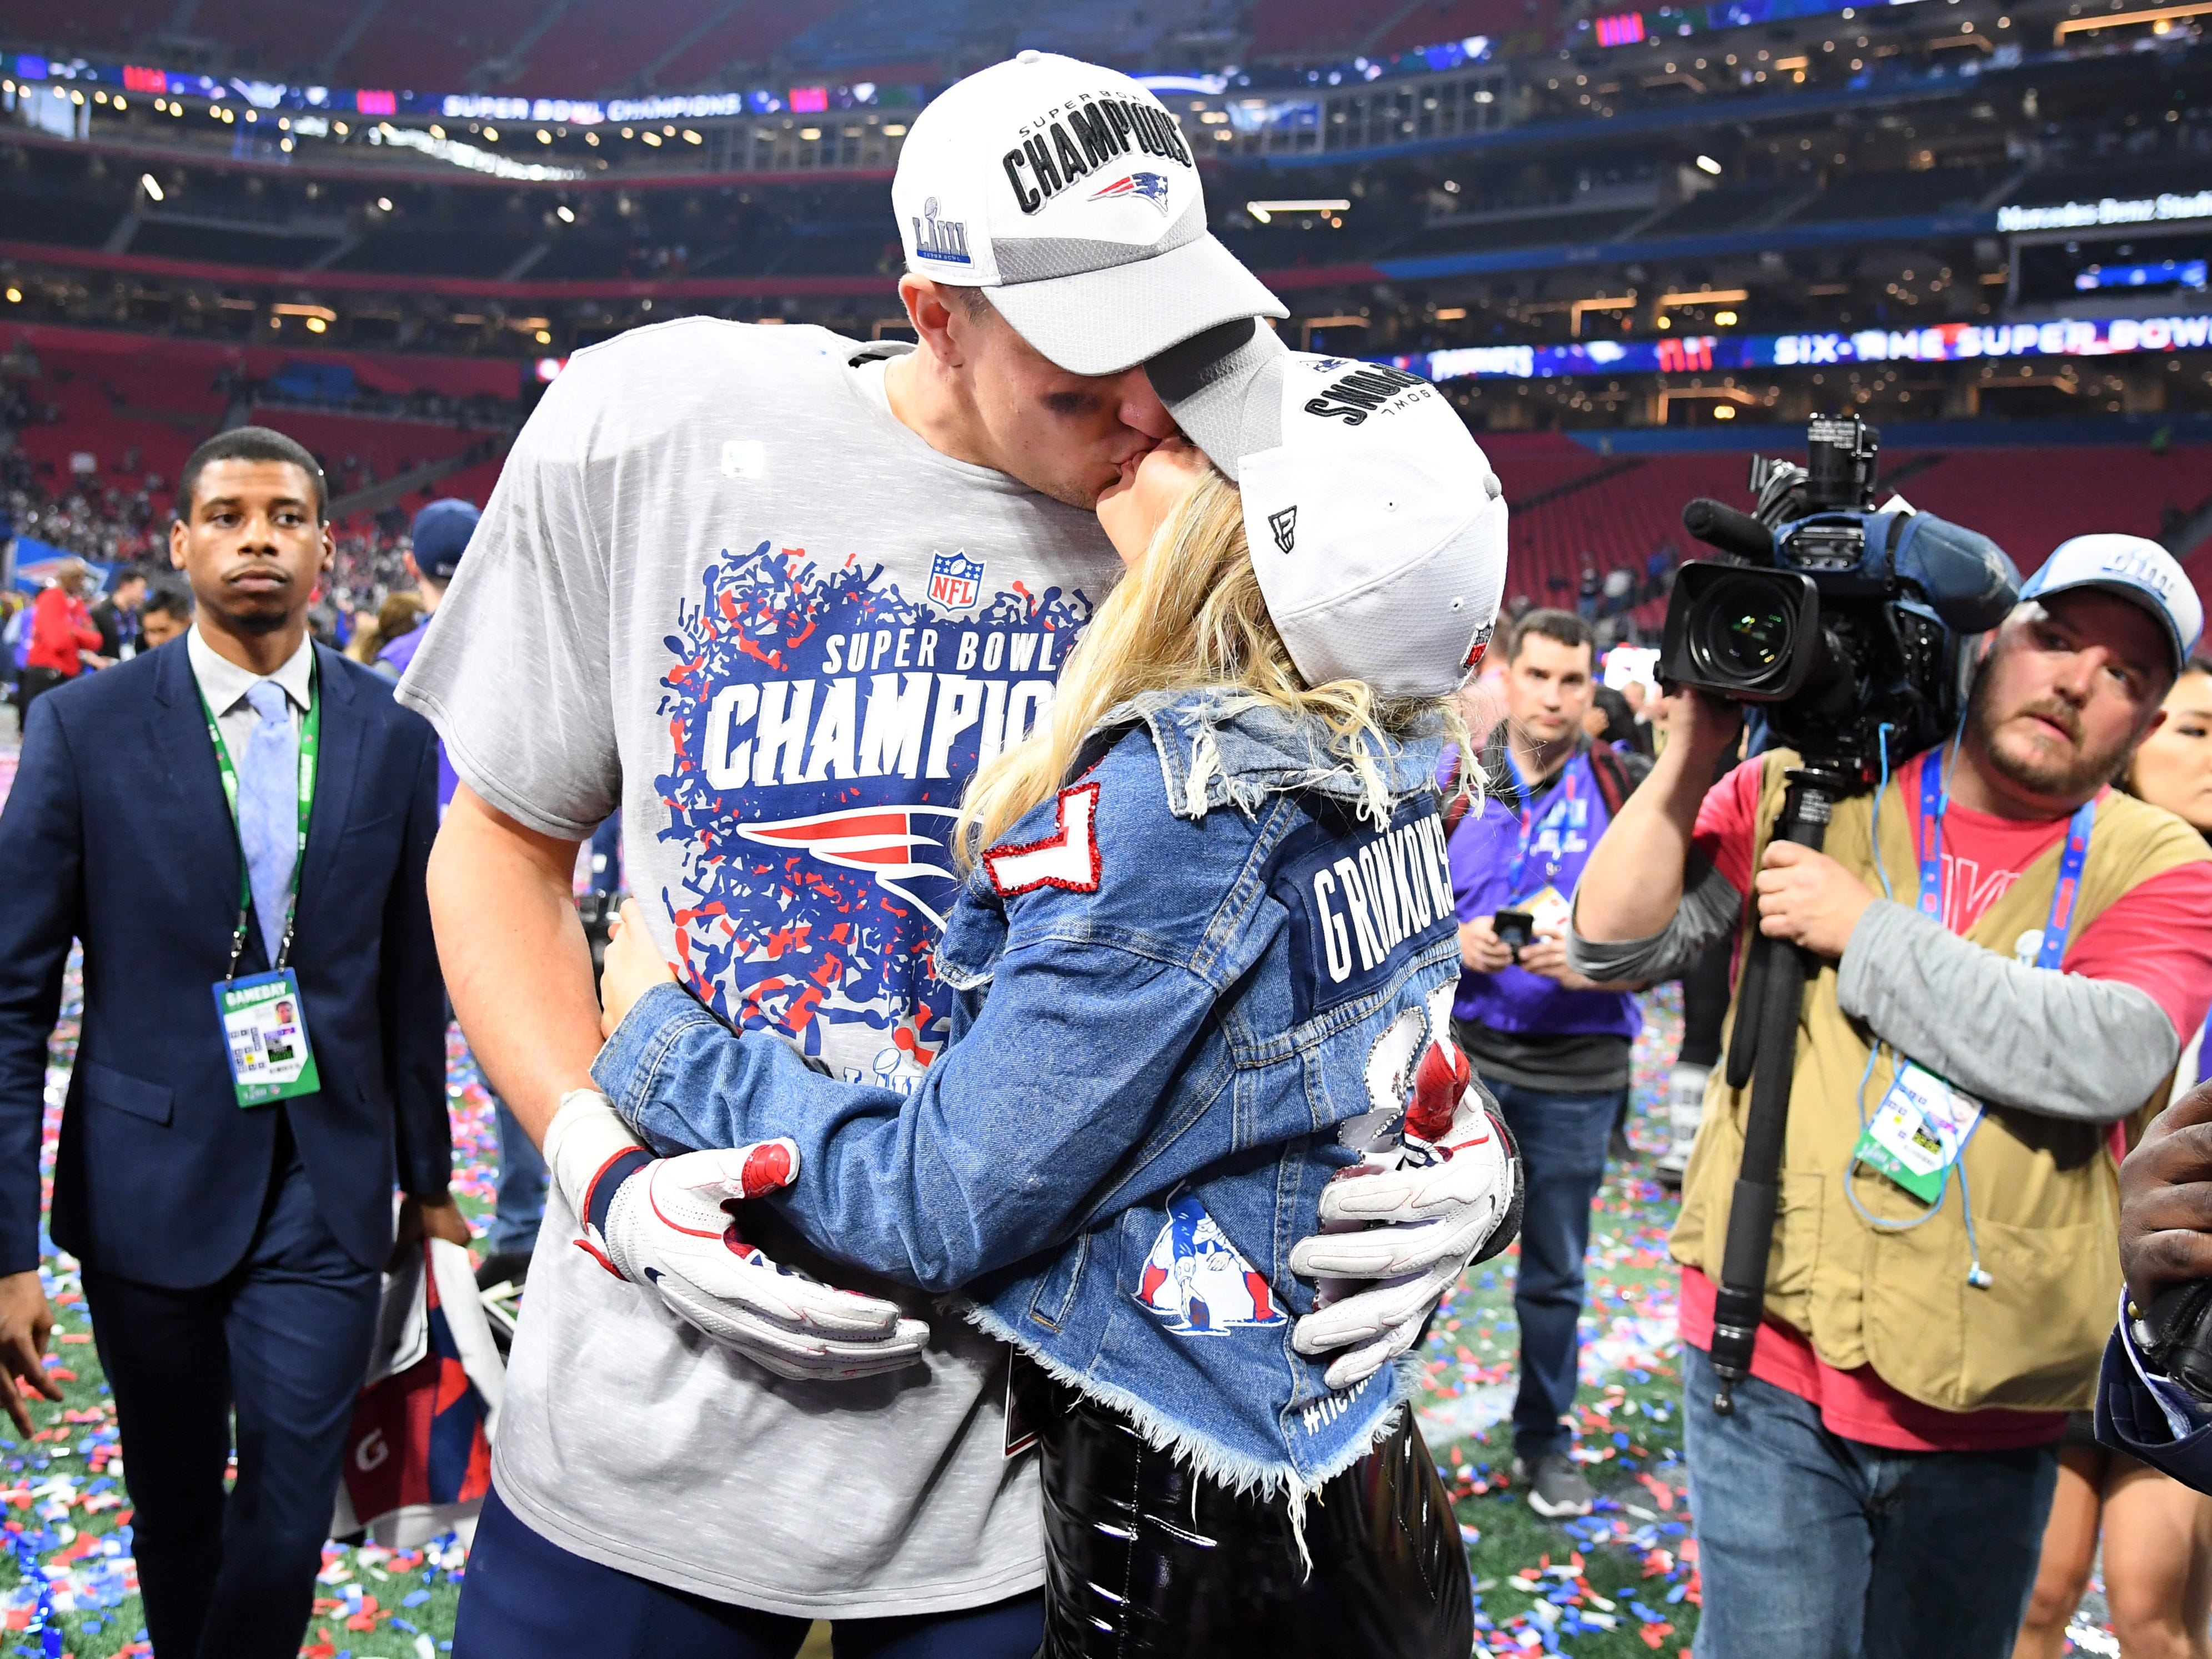 Feb. 3, 2019: Rob Gronkowski with girlfriend Camille Kostek after winning Super Bowl LIII against the Los Angeles Rams at Mercedes-Benz Stadium.